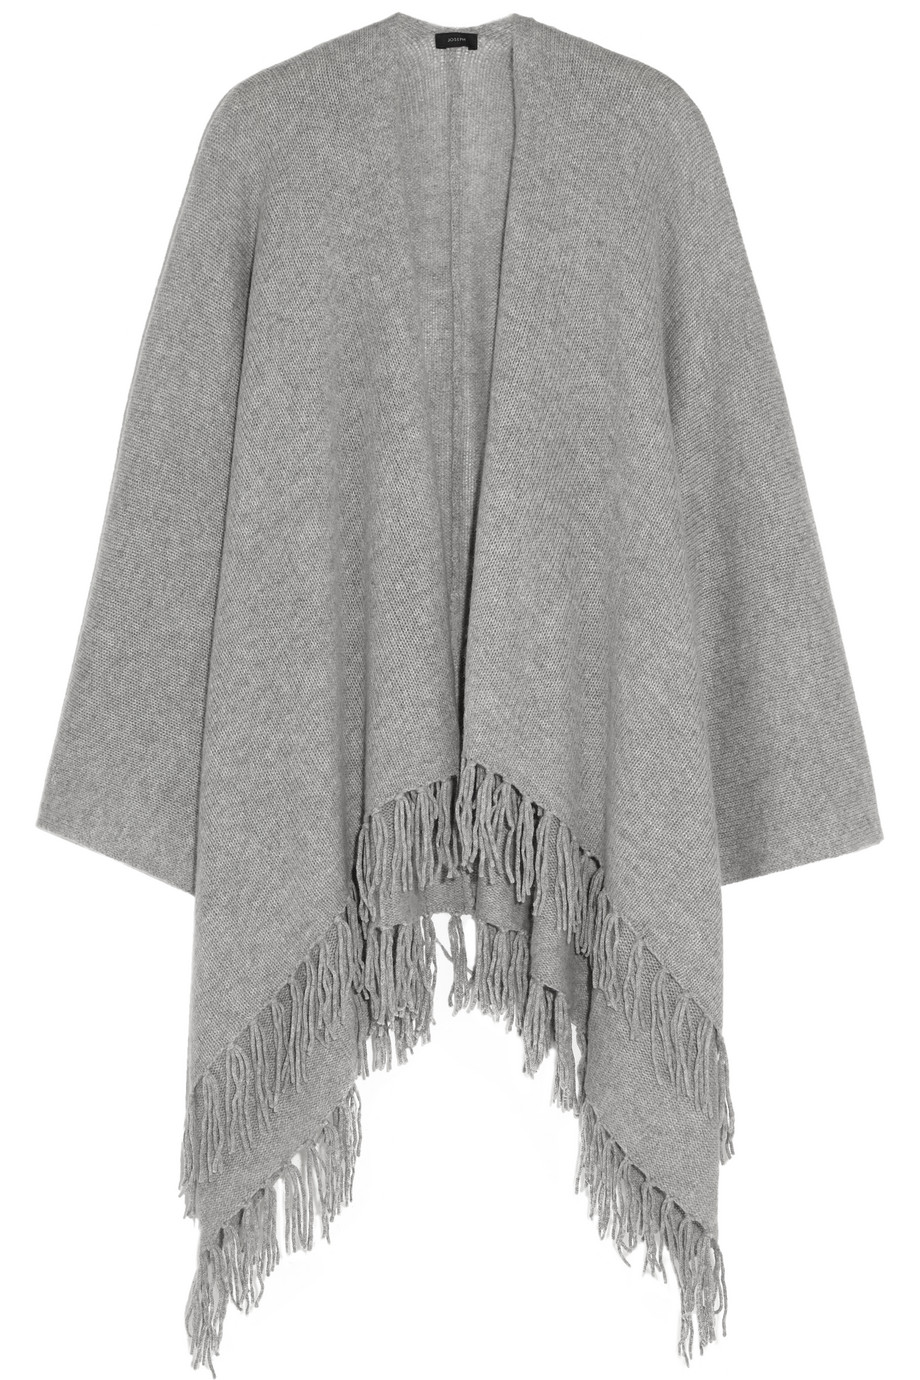 Joseph Oversized Fringed Cashmere Wrap, Light Gray, Women's